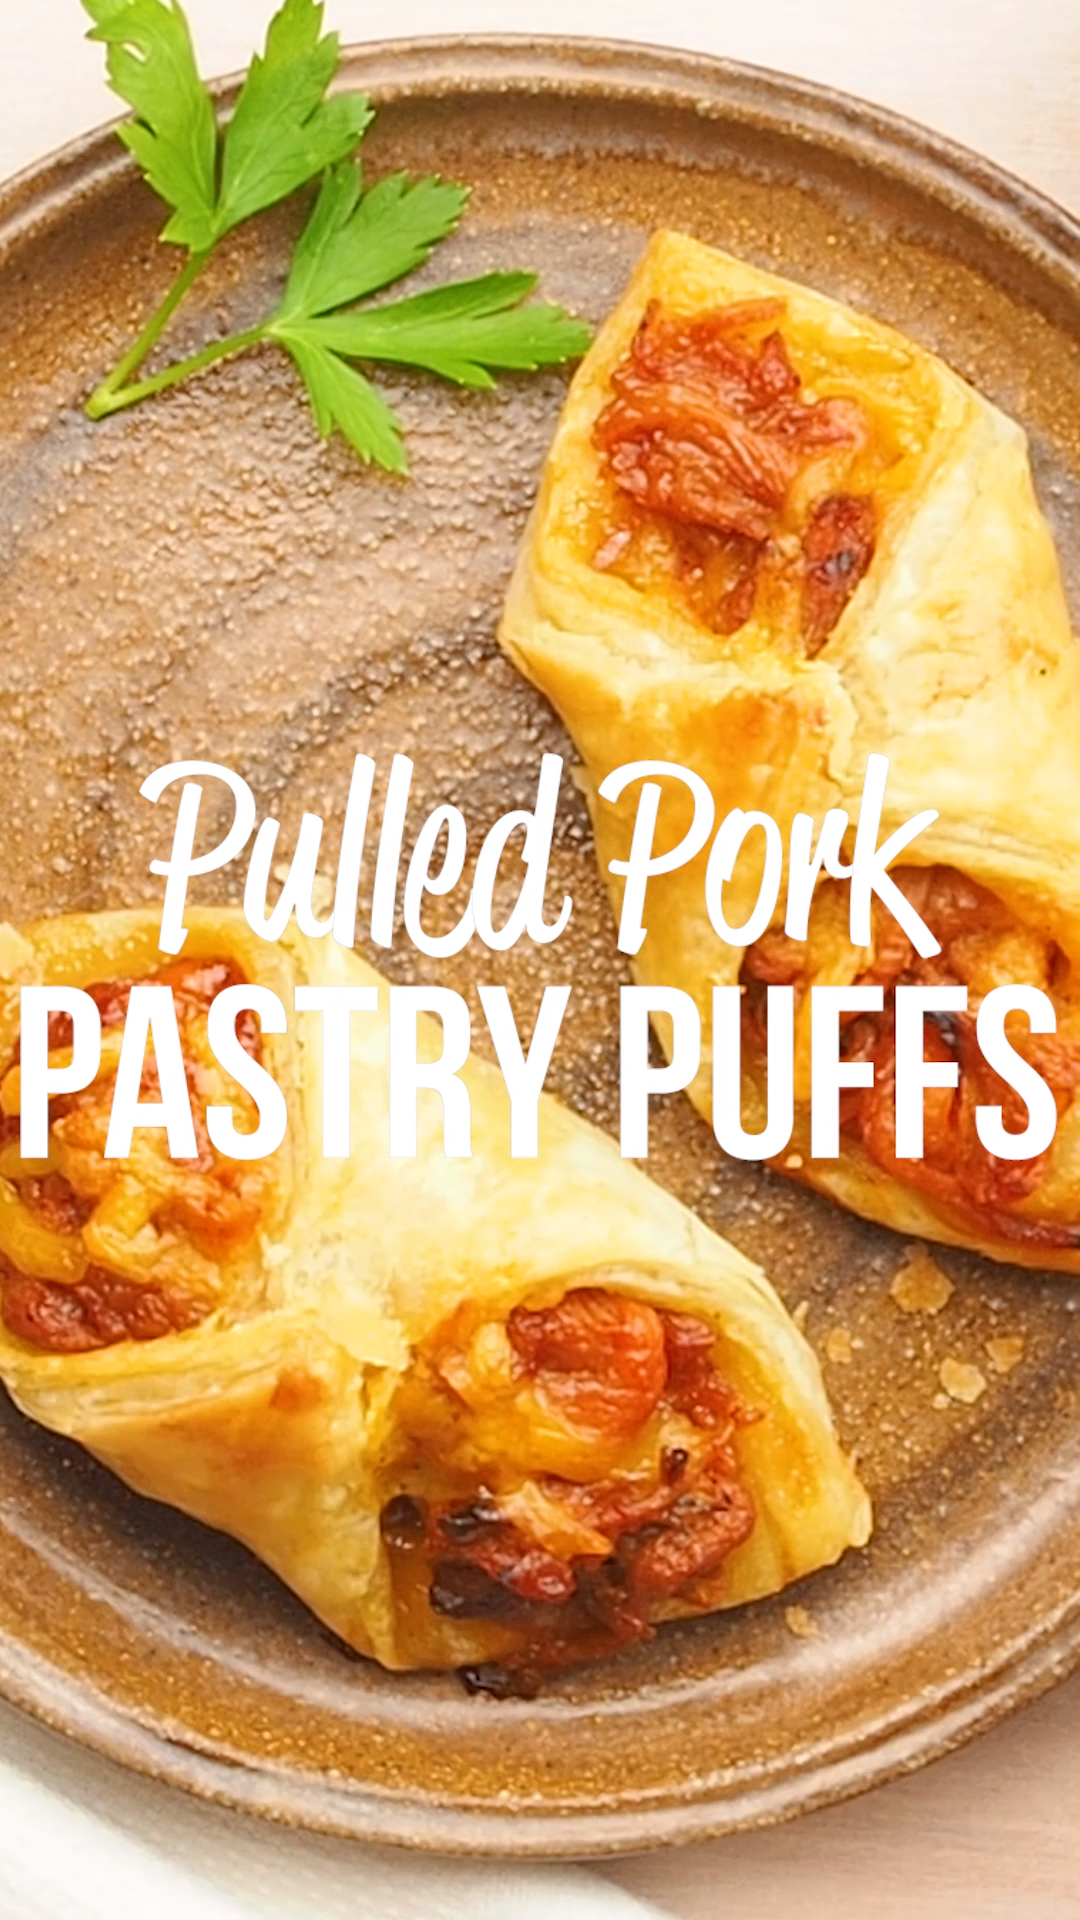 Photo of Pulled Pork Pastry Puffs Recipe